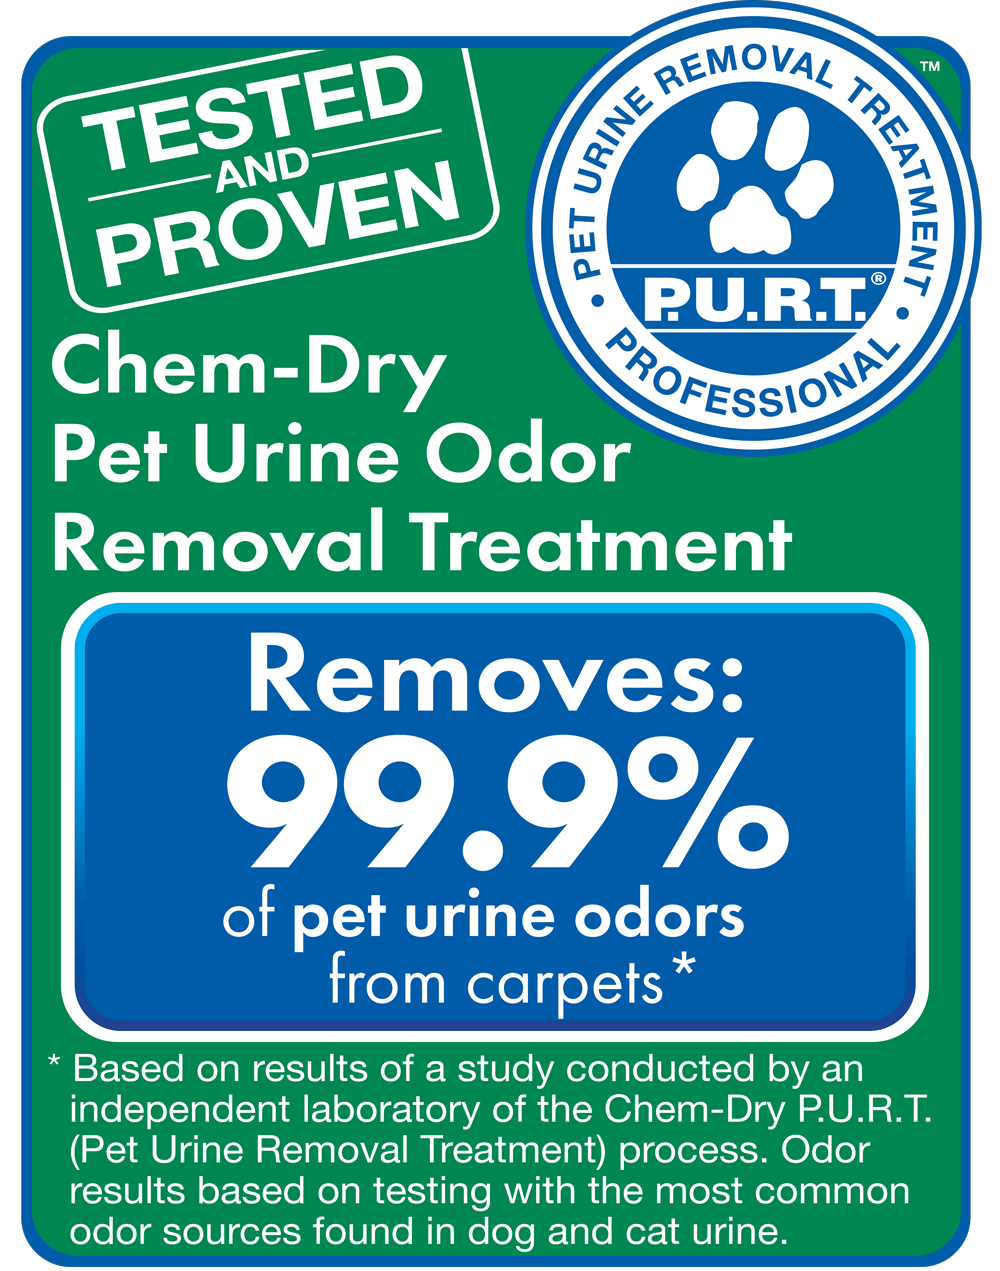 carpet and furniture cleaning presidio